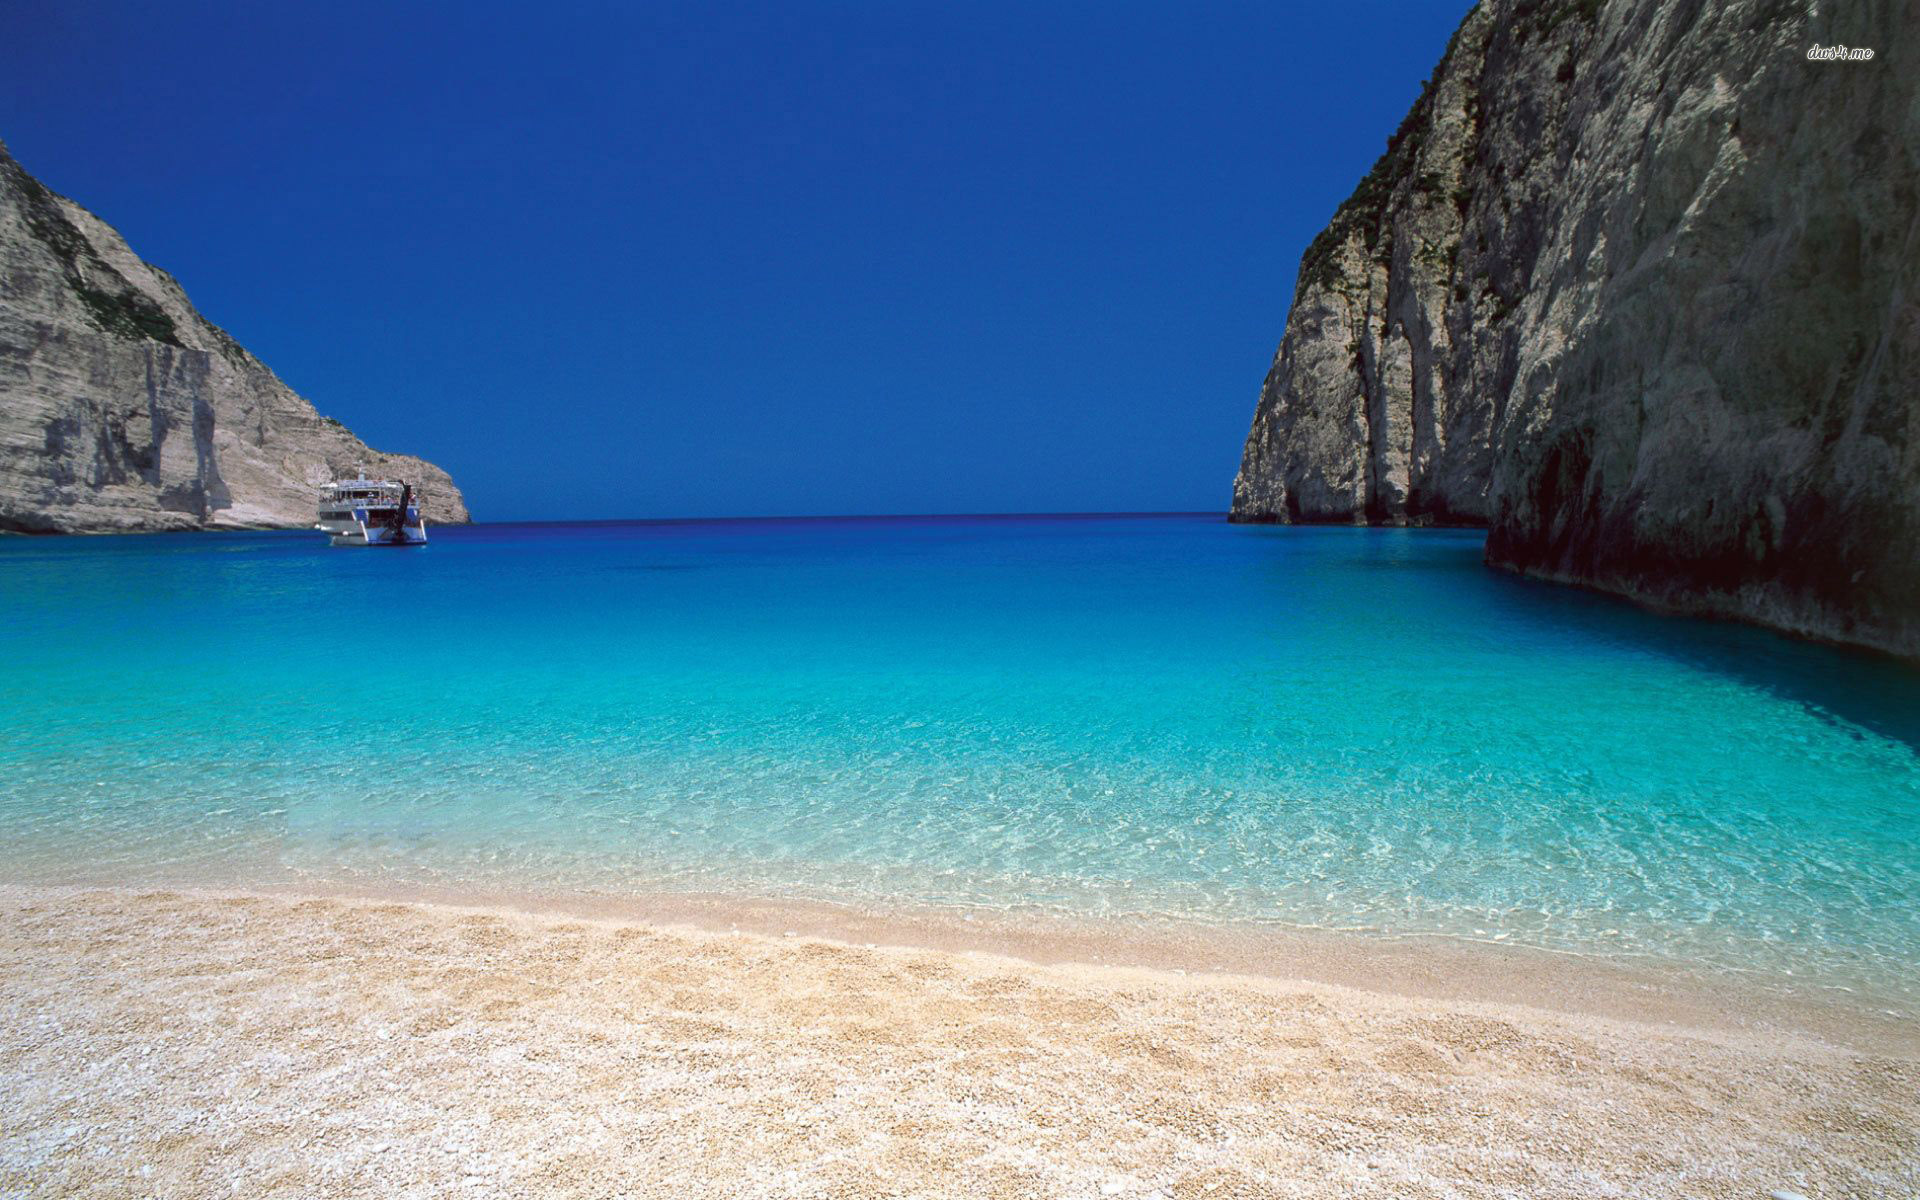 beach-in-greece-wallpaper.jpg